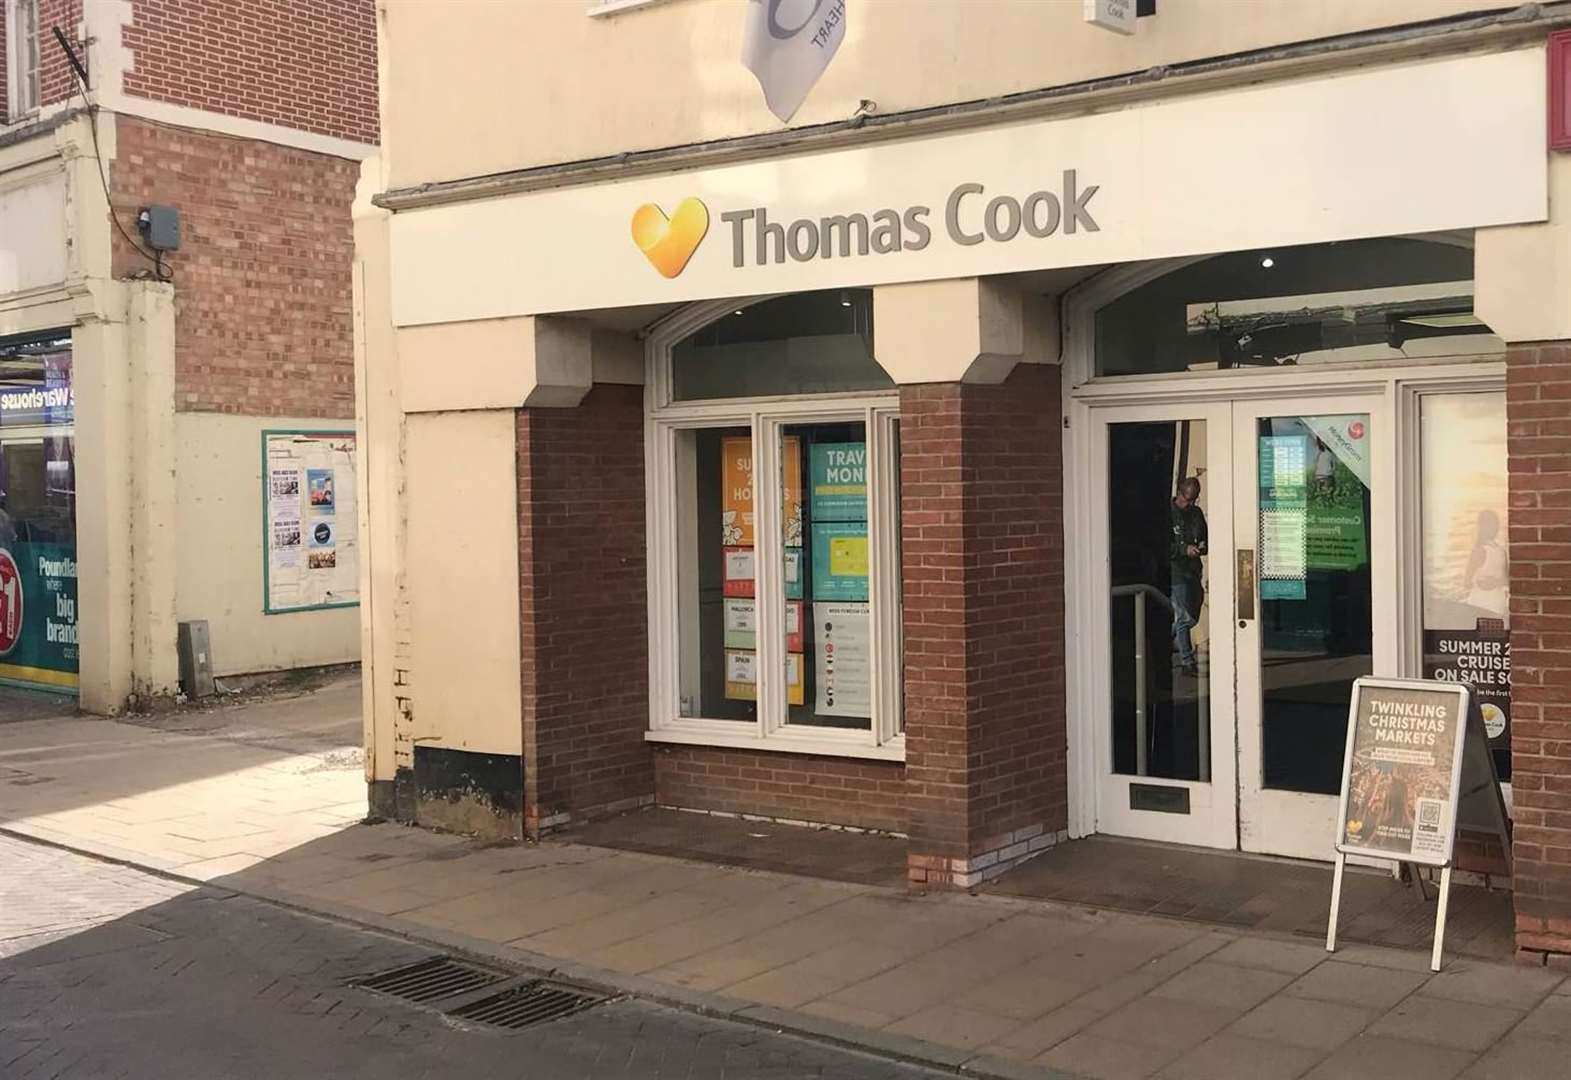 What to do if you're a Thomas Cook customer